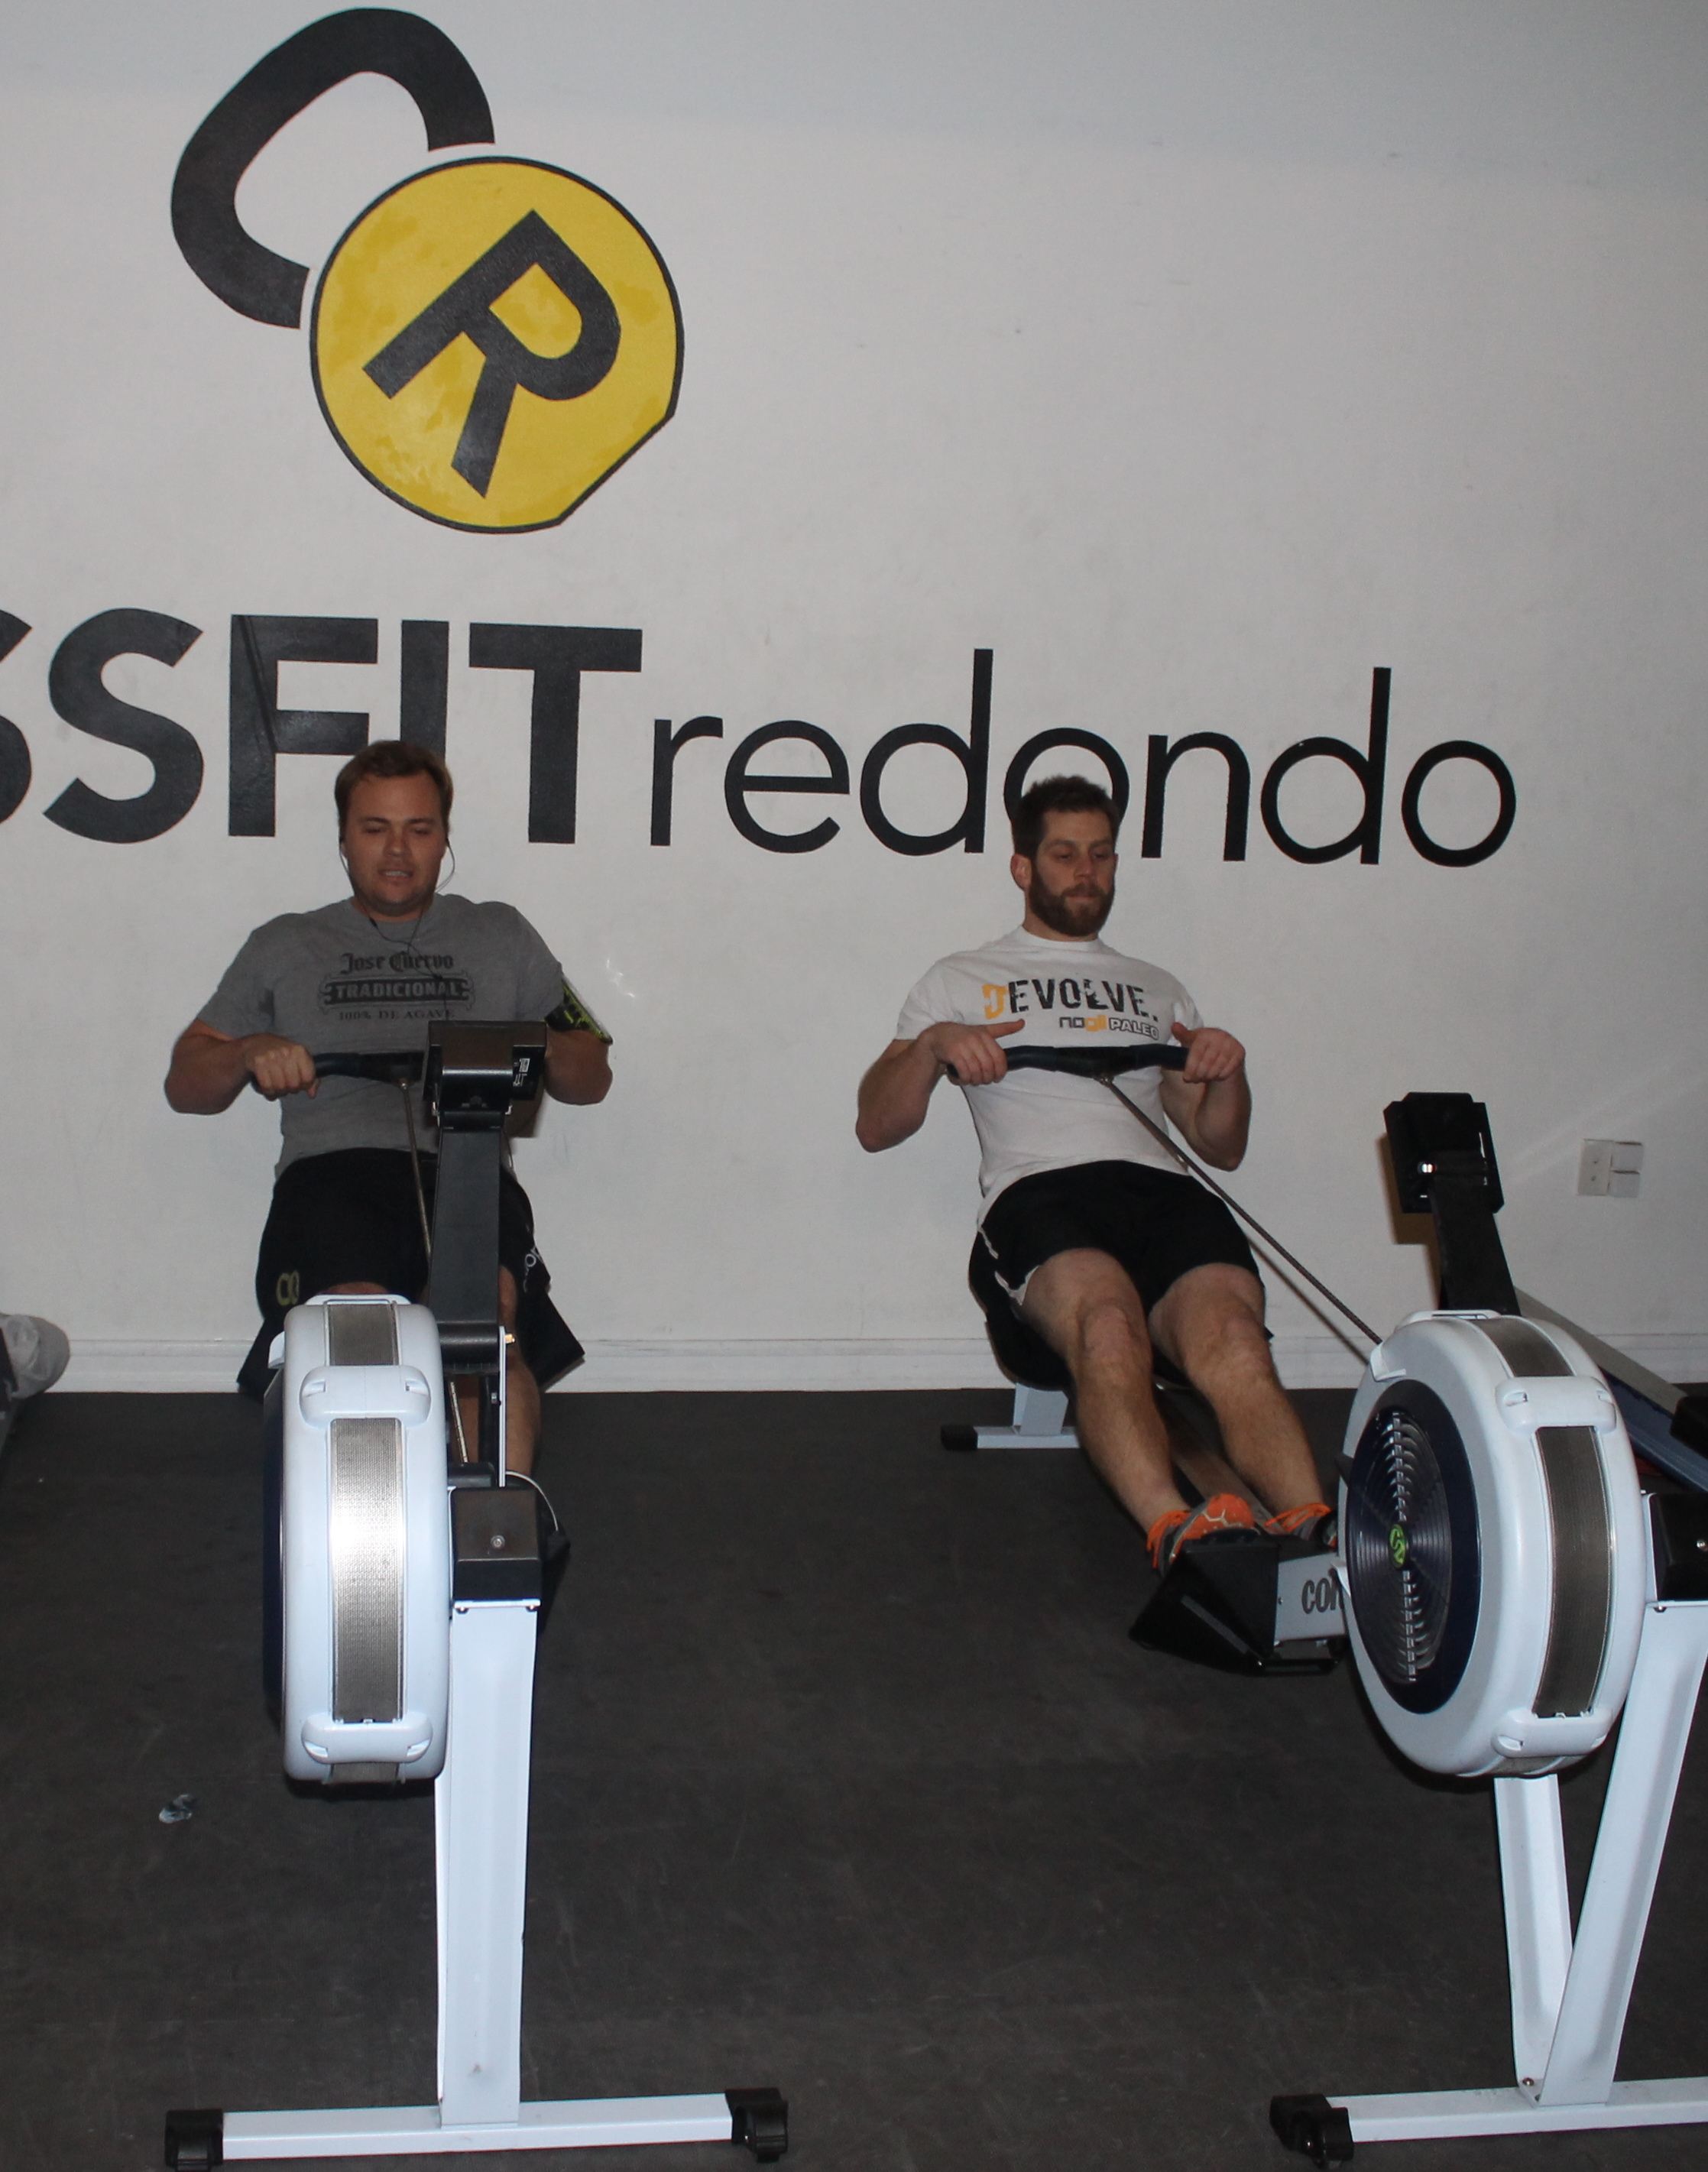 This was the start of the famous 21K row. Who is going to start this trend again?